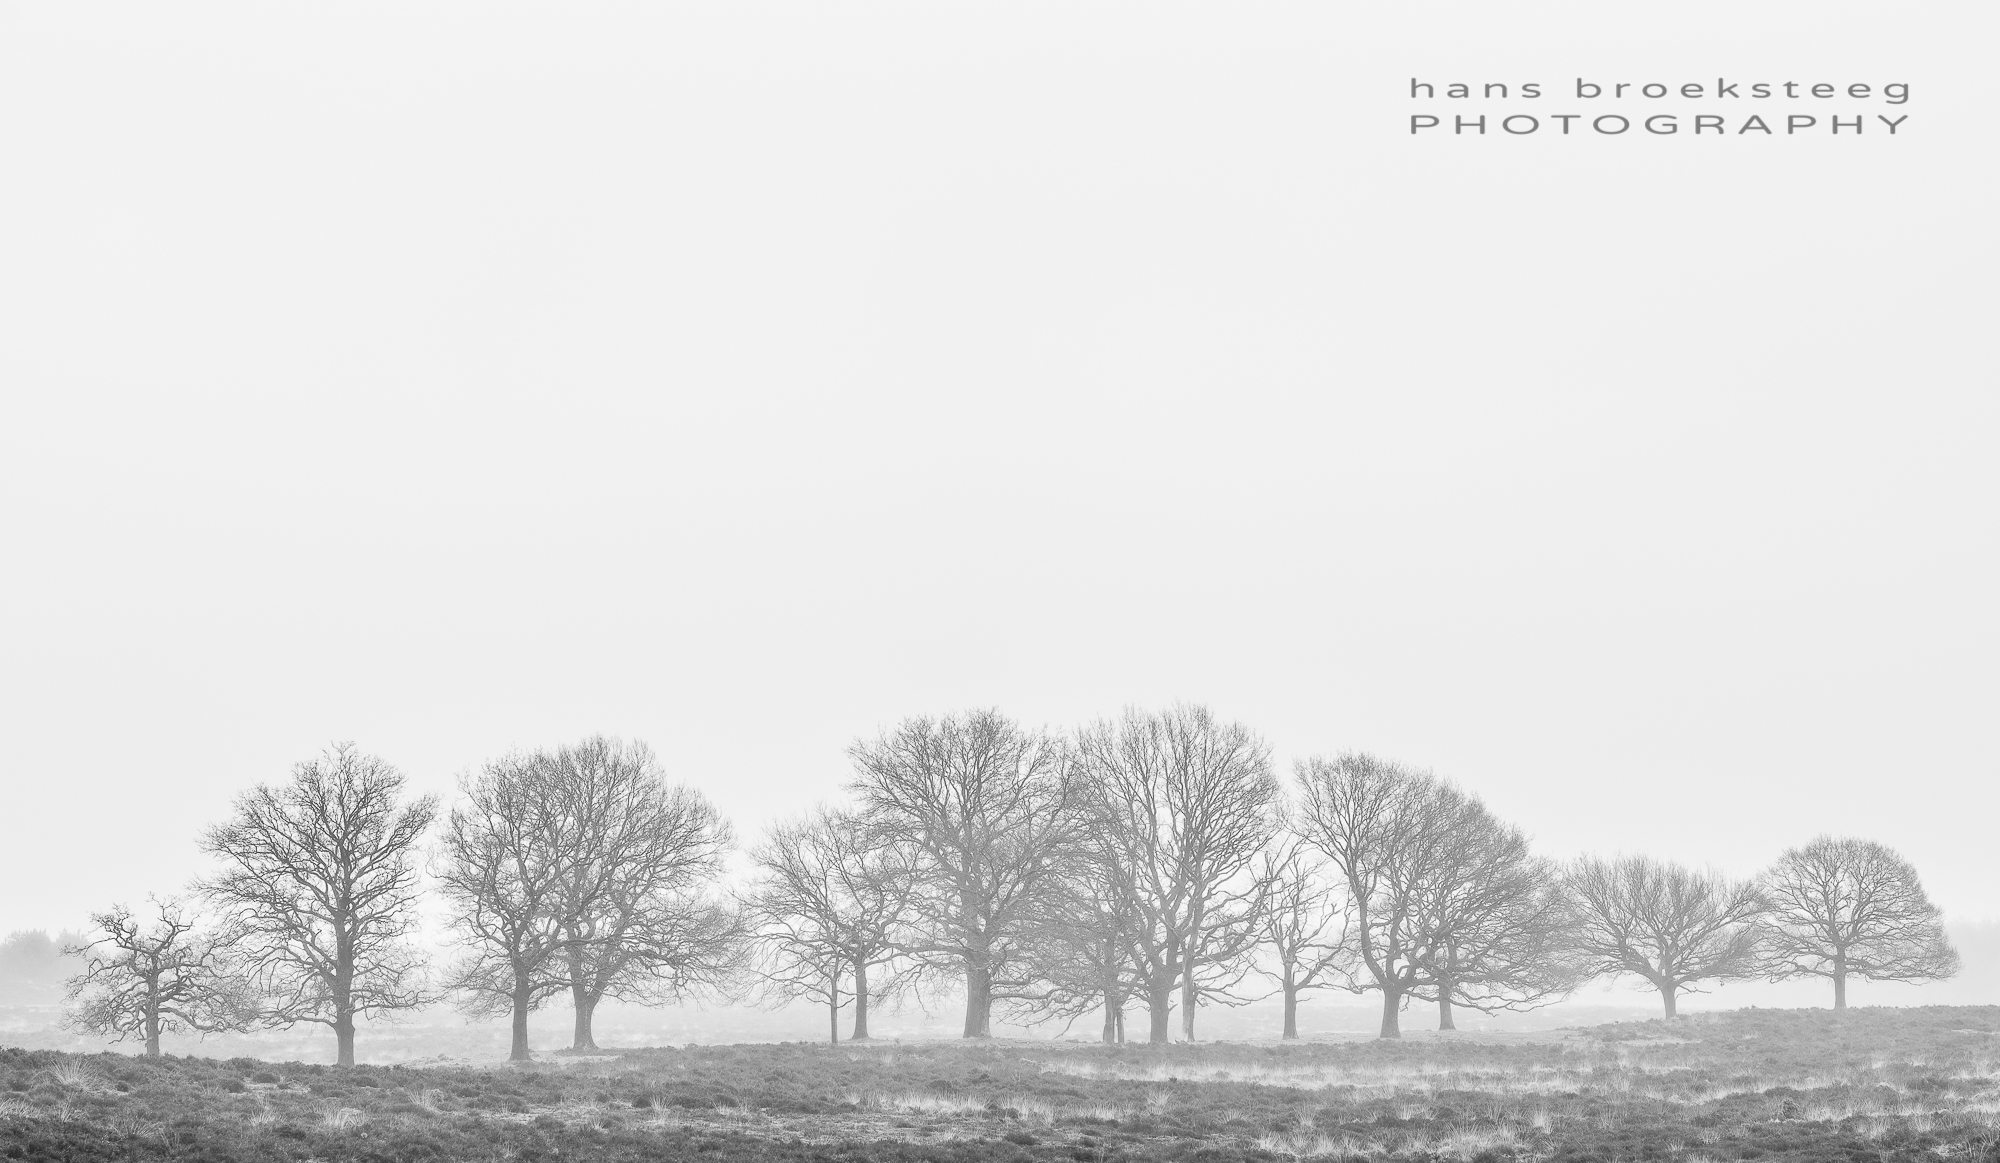 Row of trees in winter with hazy conditions